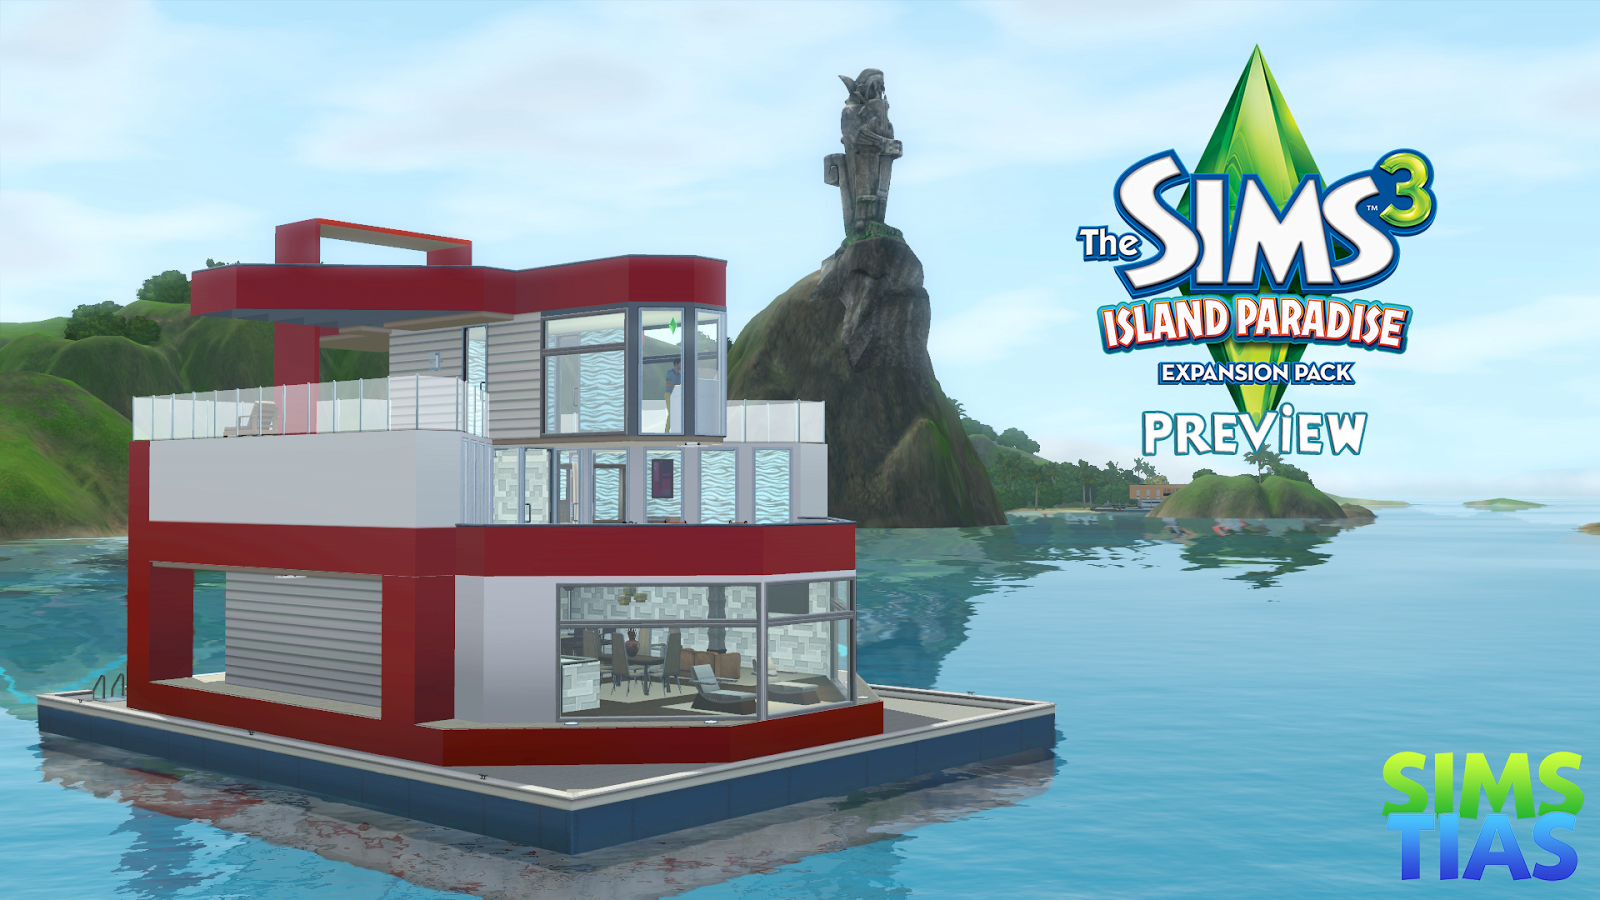 Sims3 Island Paradise Images House Boat HD Wallpaper And Background Photos